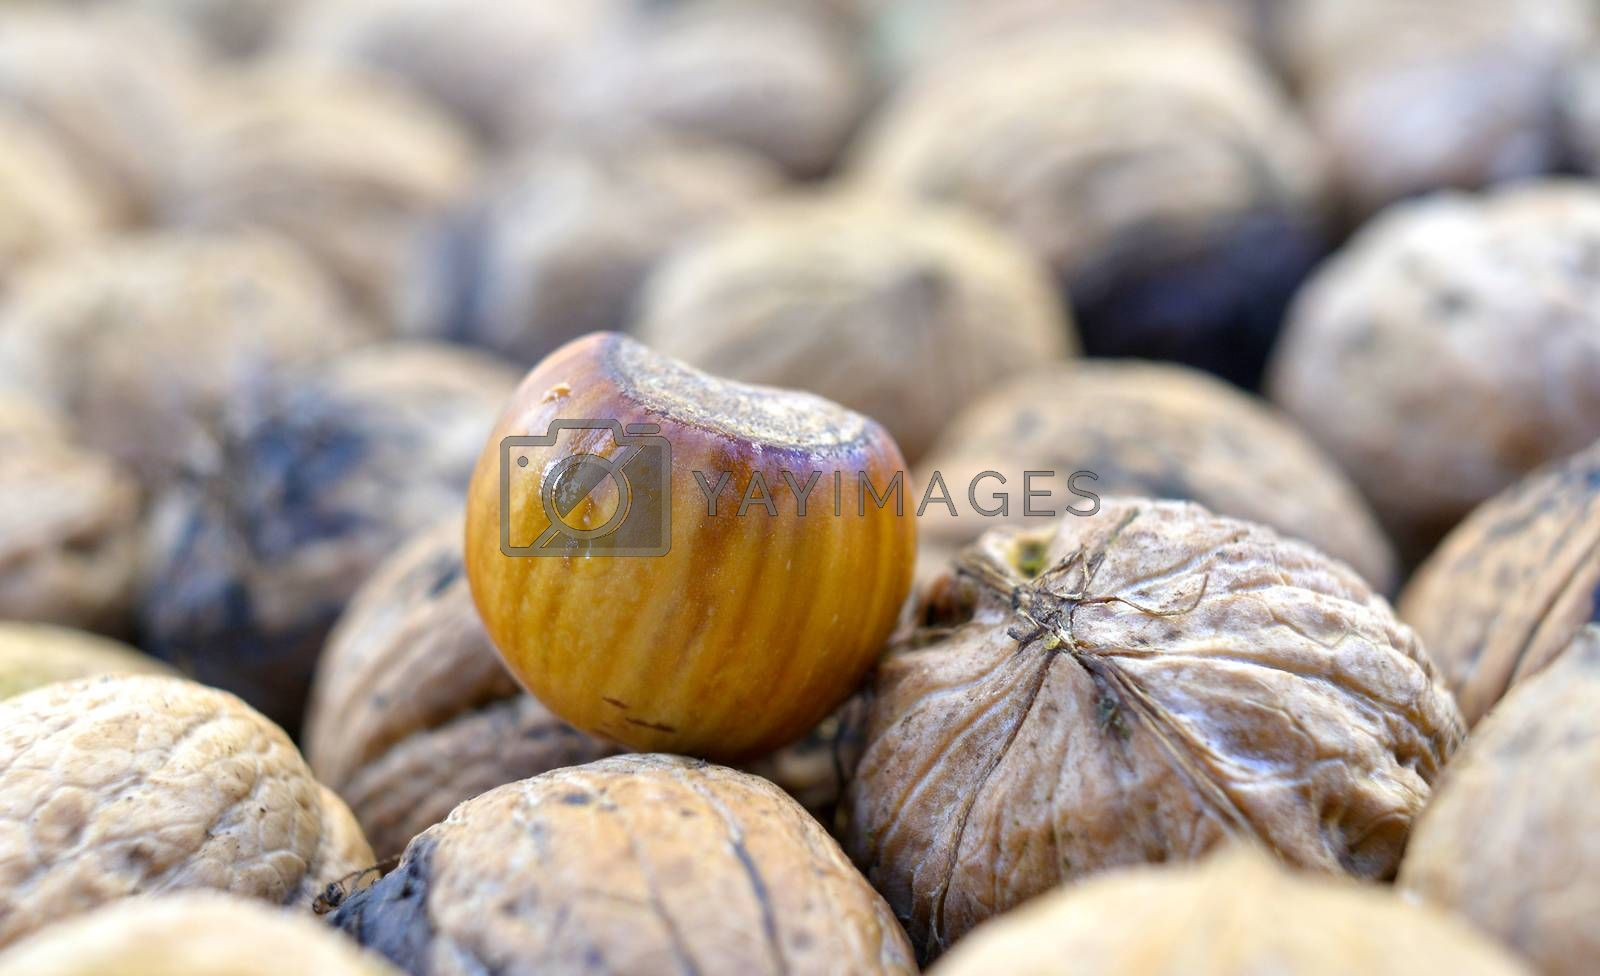 image of raw organic nuts,image of a